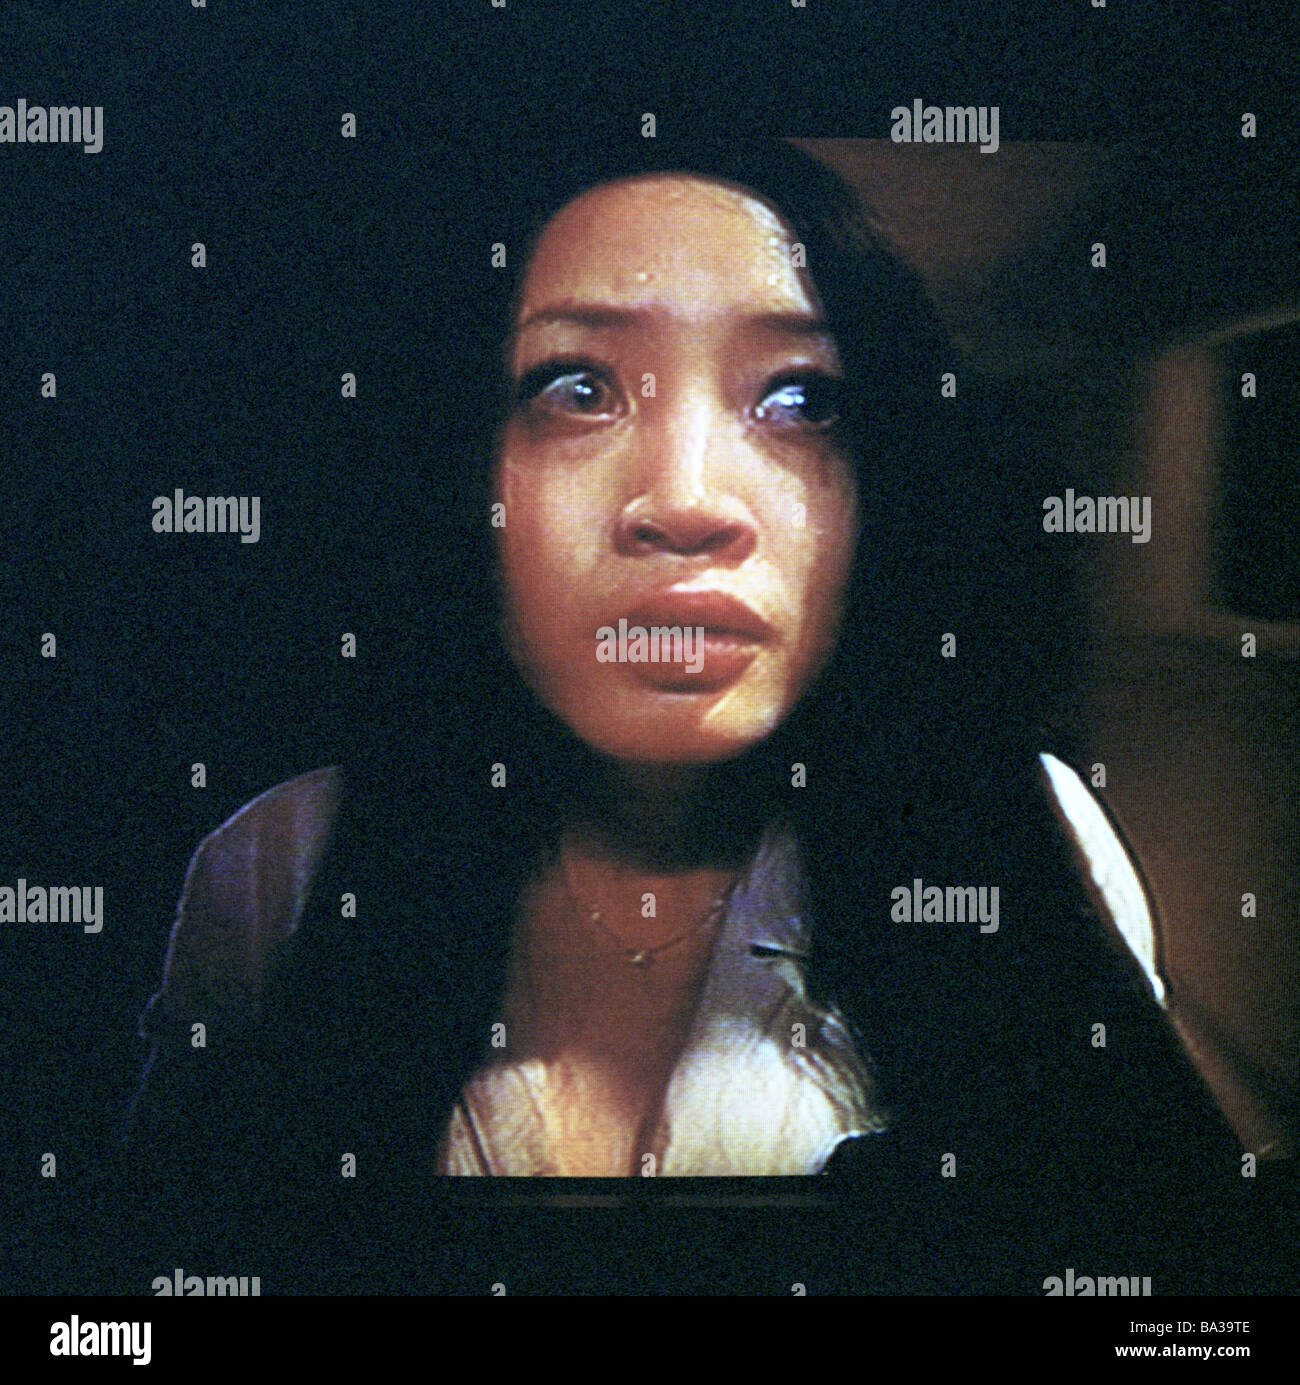 Television-program film woman Asian fear cries portrait no models release Asia China television startled program - Stock Image